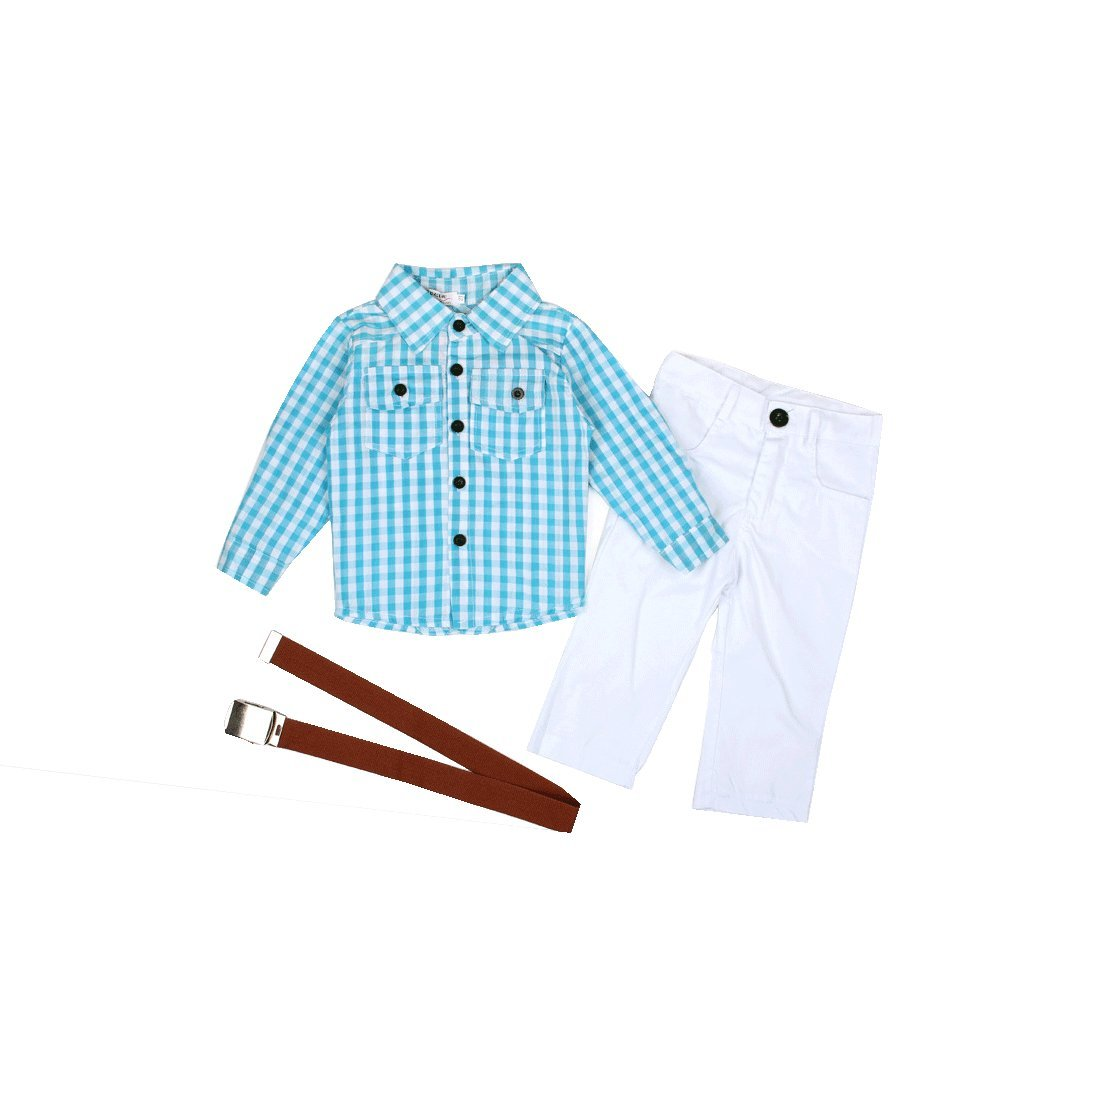 Little Boys' Striped Shirt and Casual Trousers Set (6T)